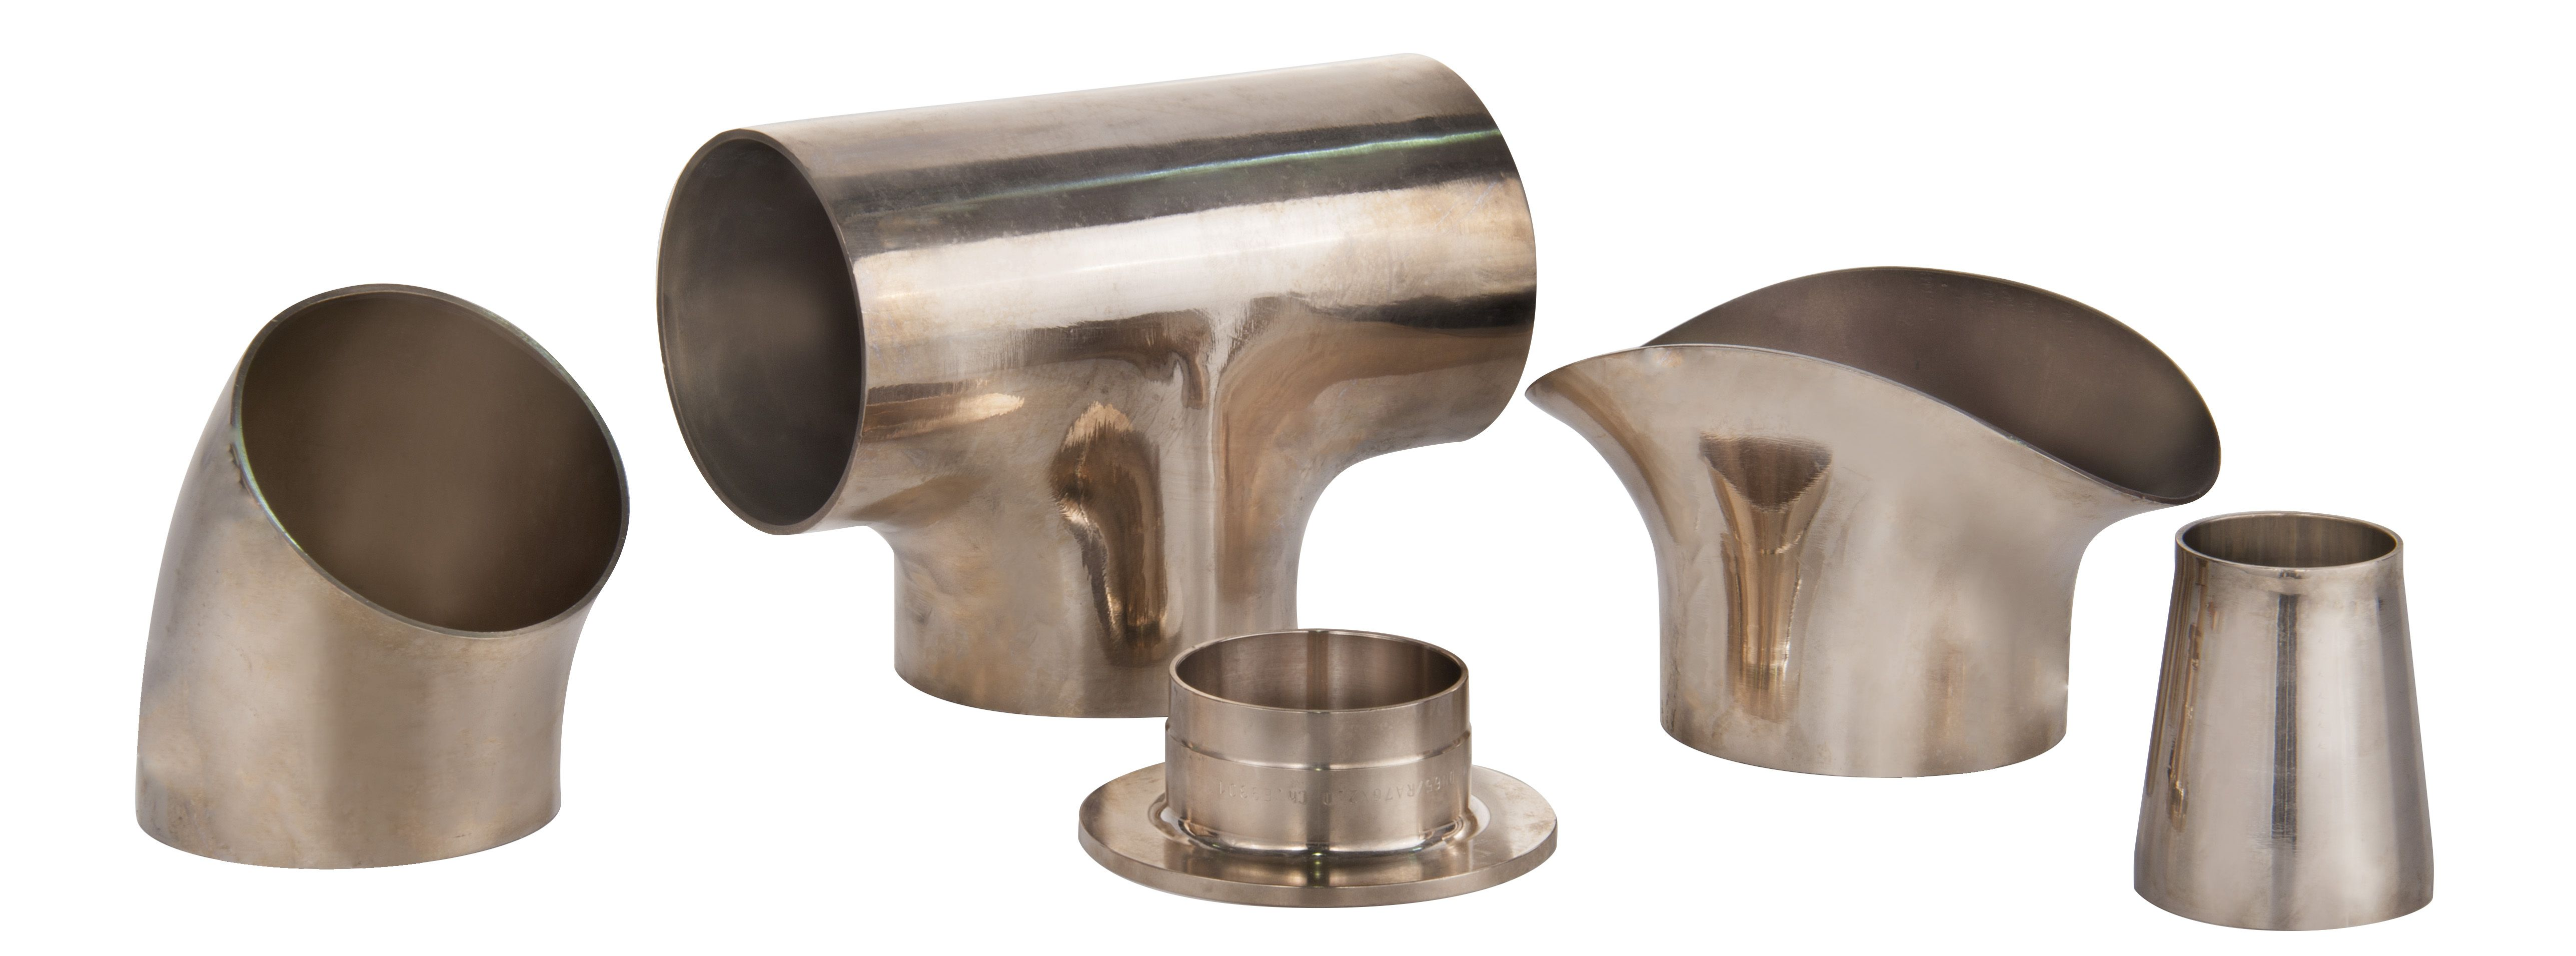 World Wide Metric offers a selection of Copper Nickel